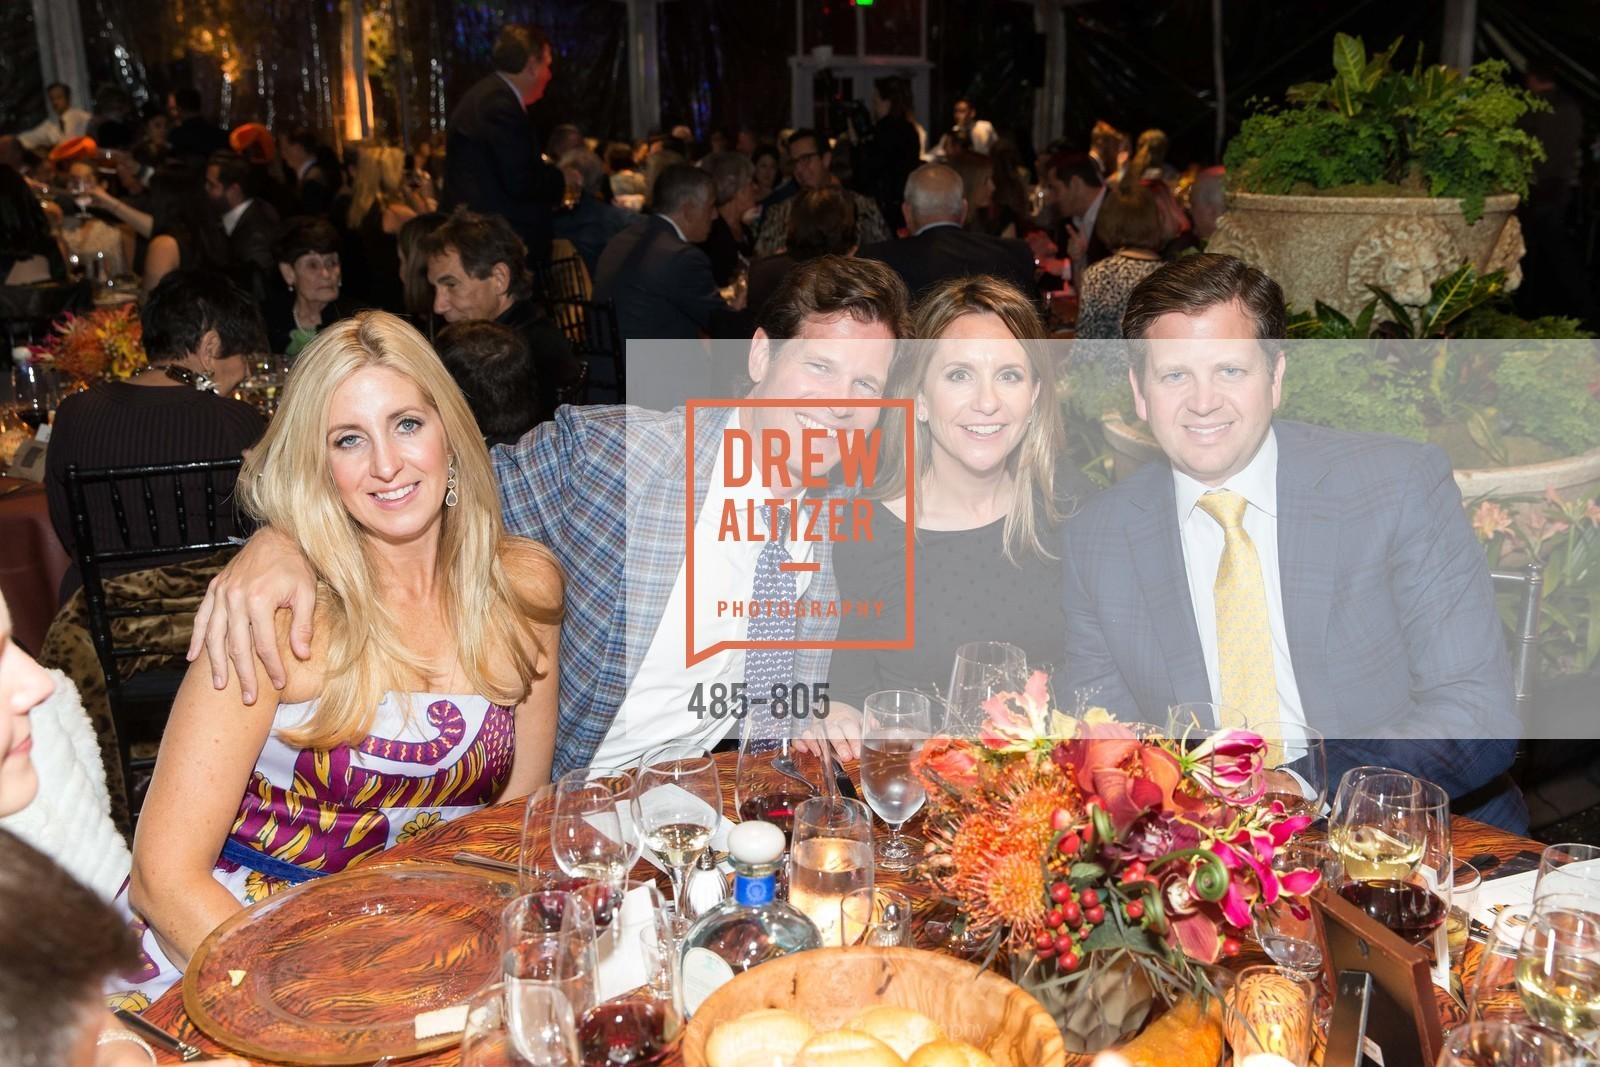 Top Picks, ZOOFEST 2015, April 26th, 2015, Photo,Drew Altizer, Drew Altizer Photography, full-service event agency, private events, San Francisco photographer, photographer California